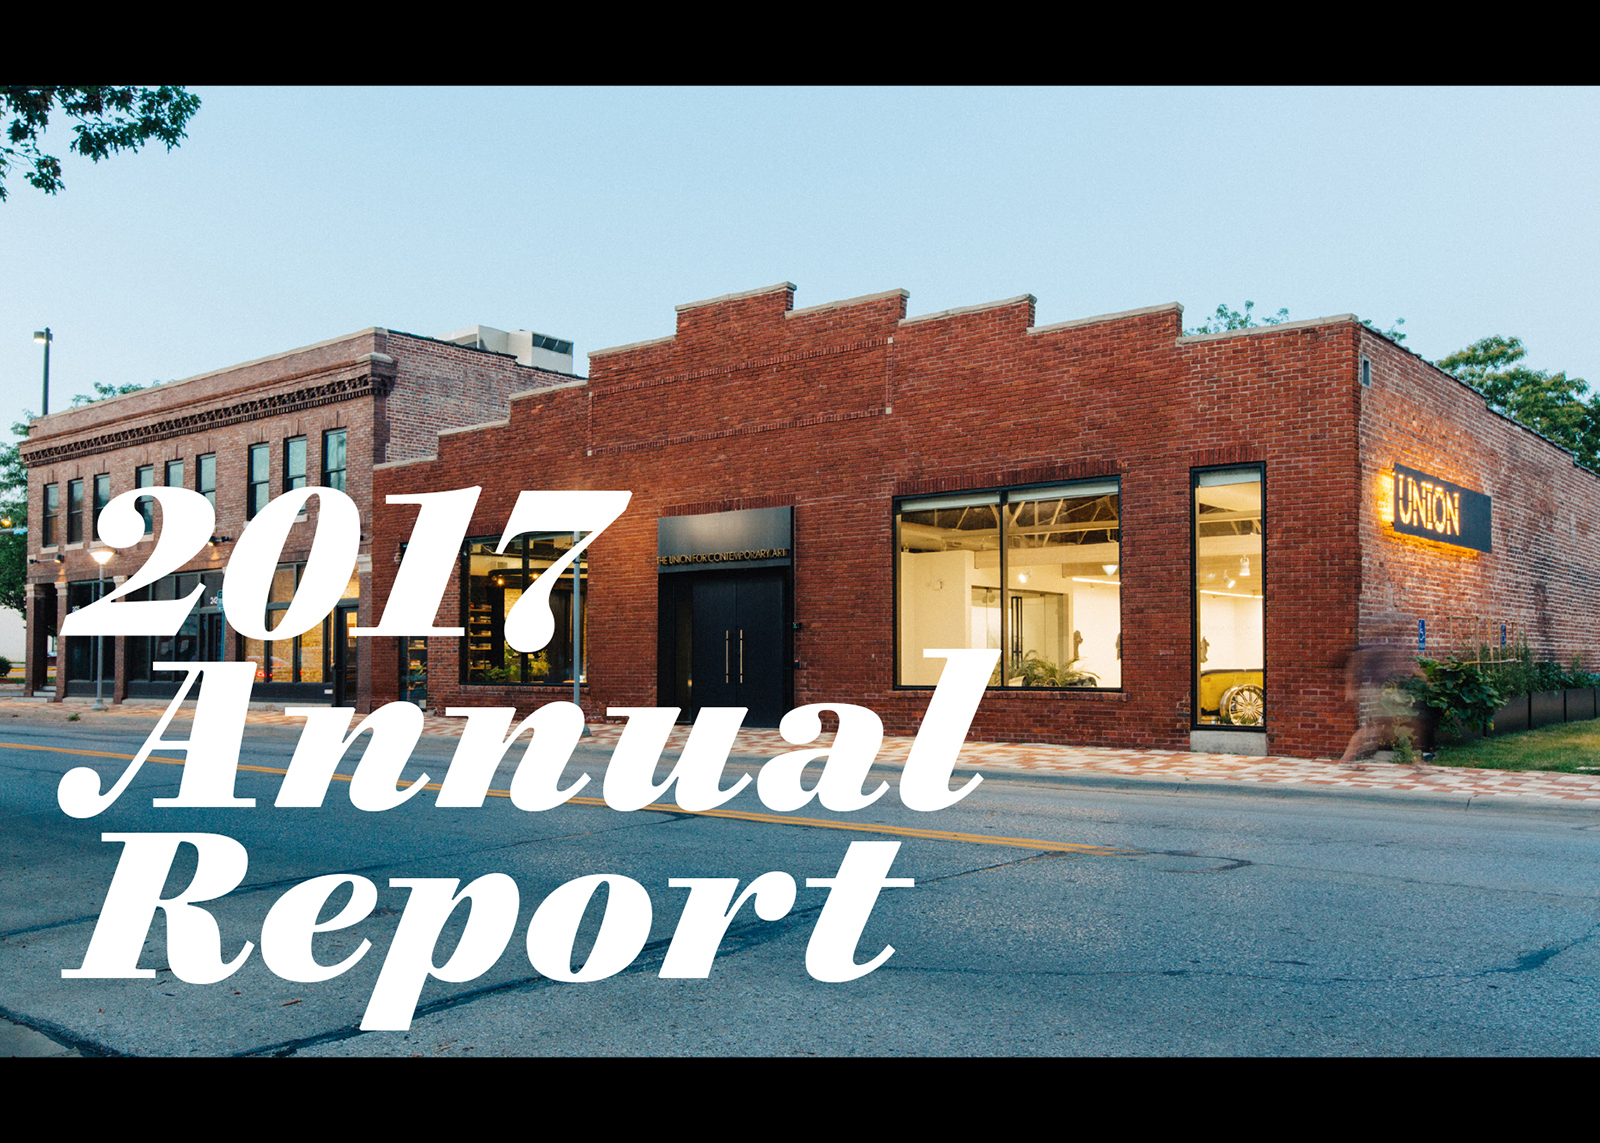 Union-annualreport-2017